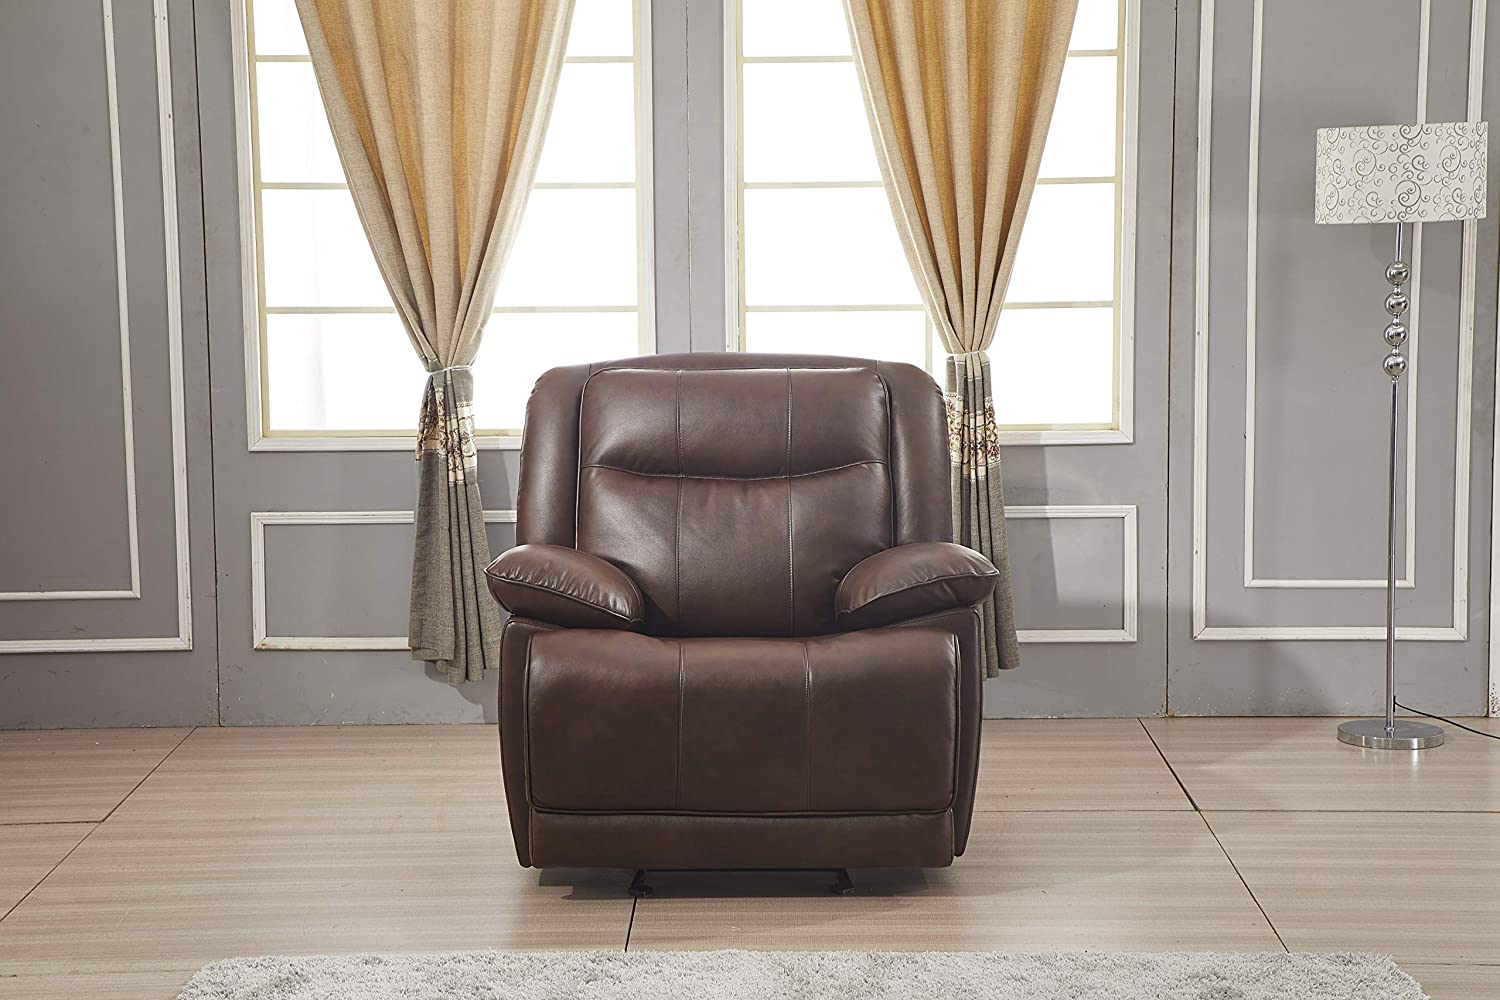 Betsy Furniture Bonded Leather Reclining Sofa Couch Set Living Room Set 8006 (Brown, Glider Chair)